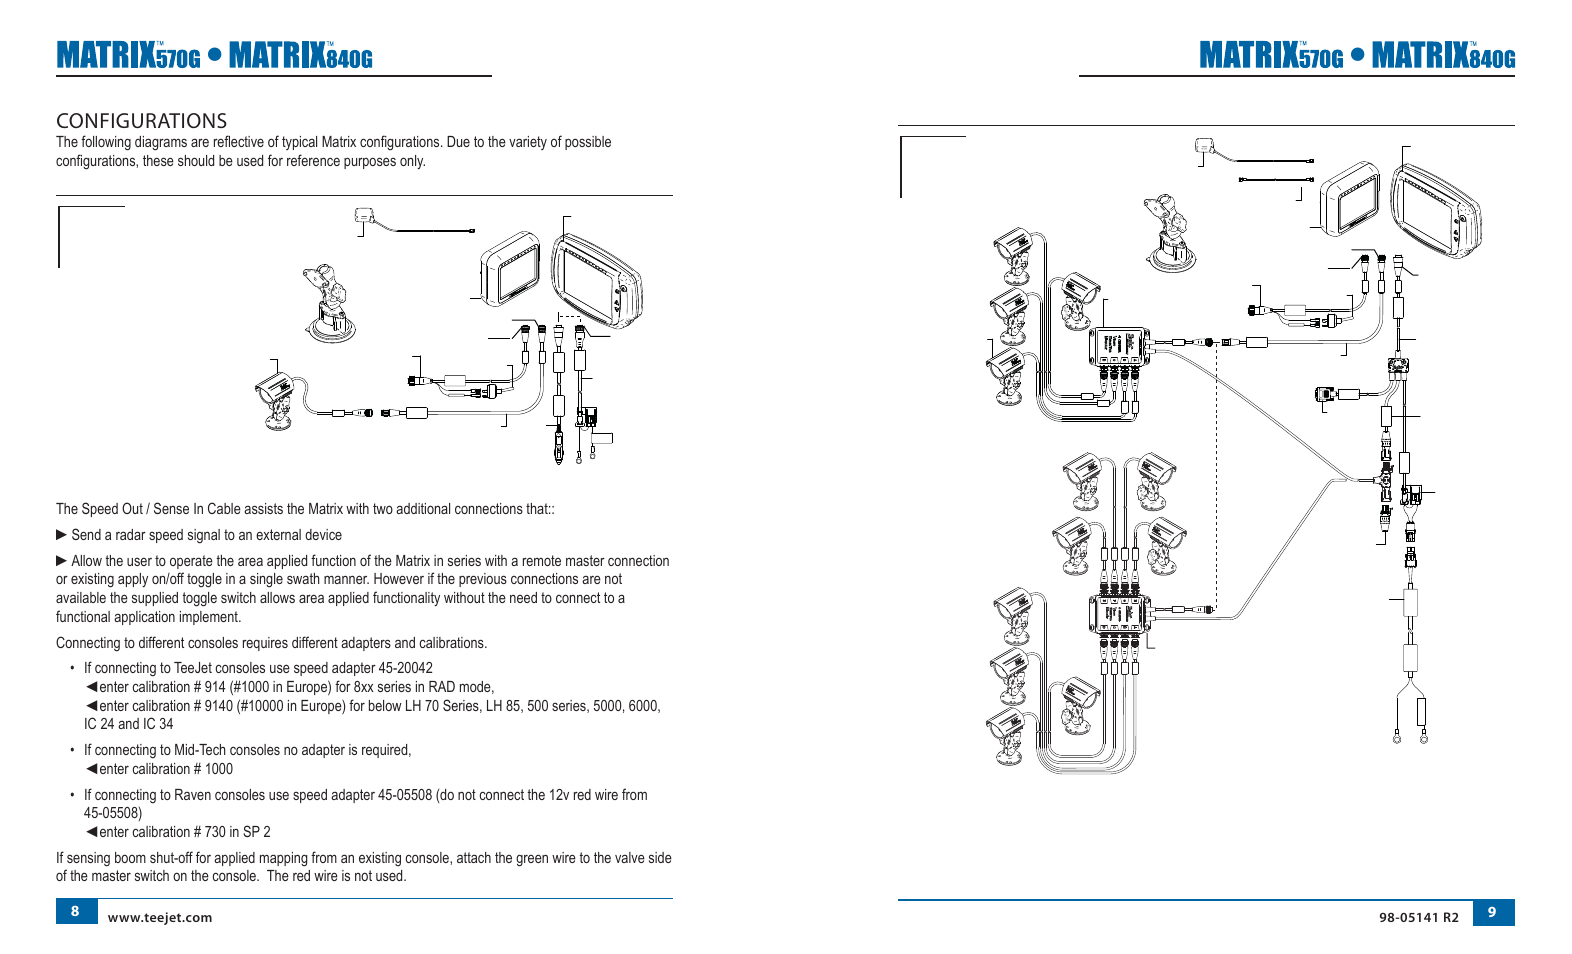 Raven 440 Wiring Harness Just Another Diagram Blog John Deere Rate Controller Fuel System Odicis Schematic